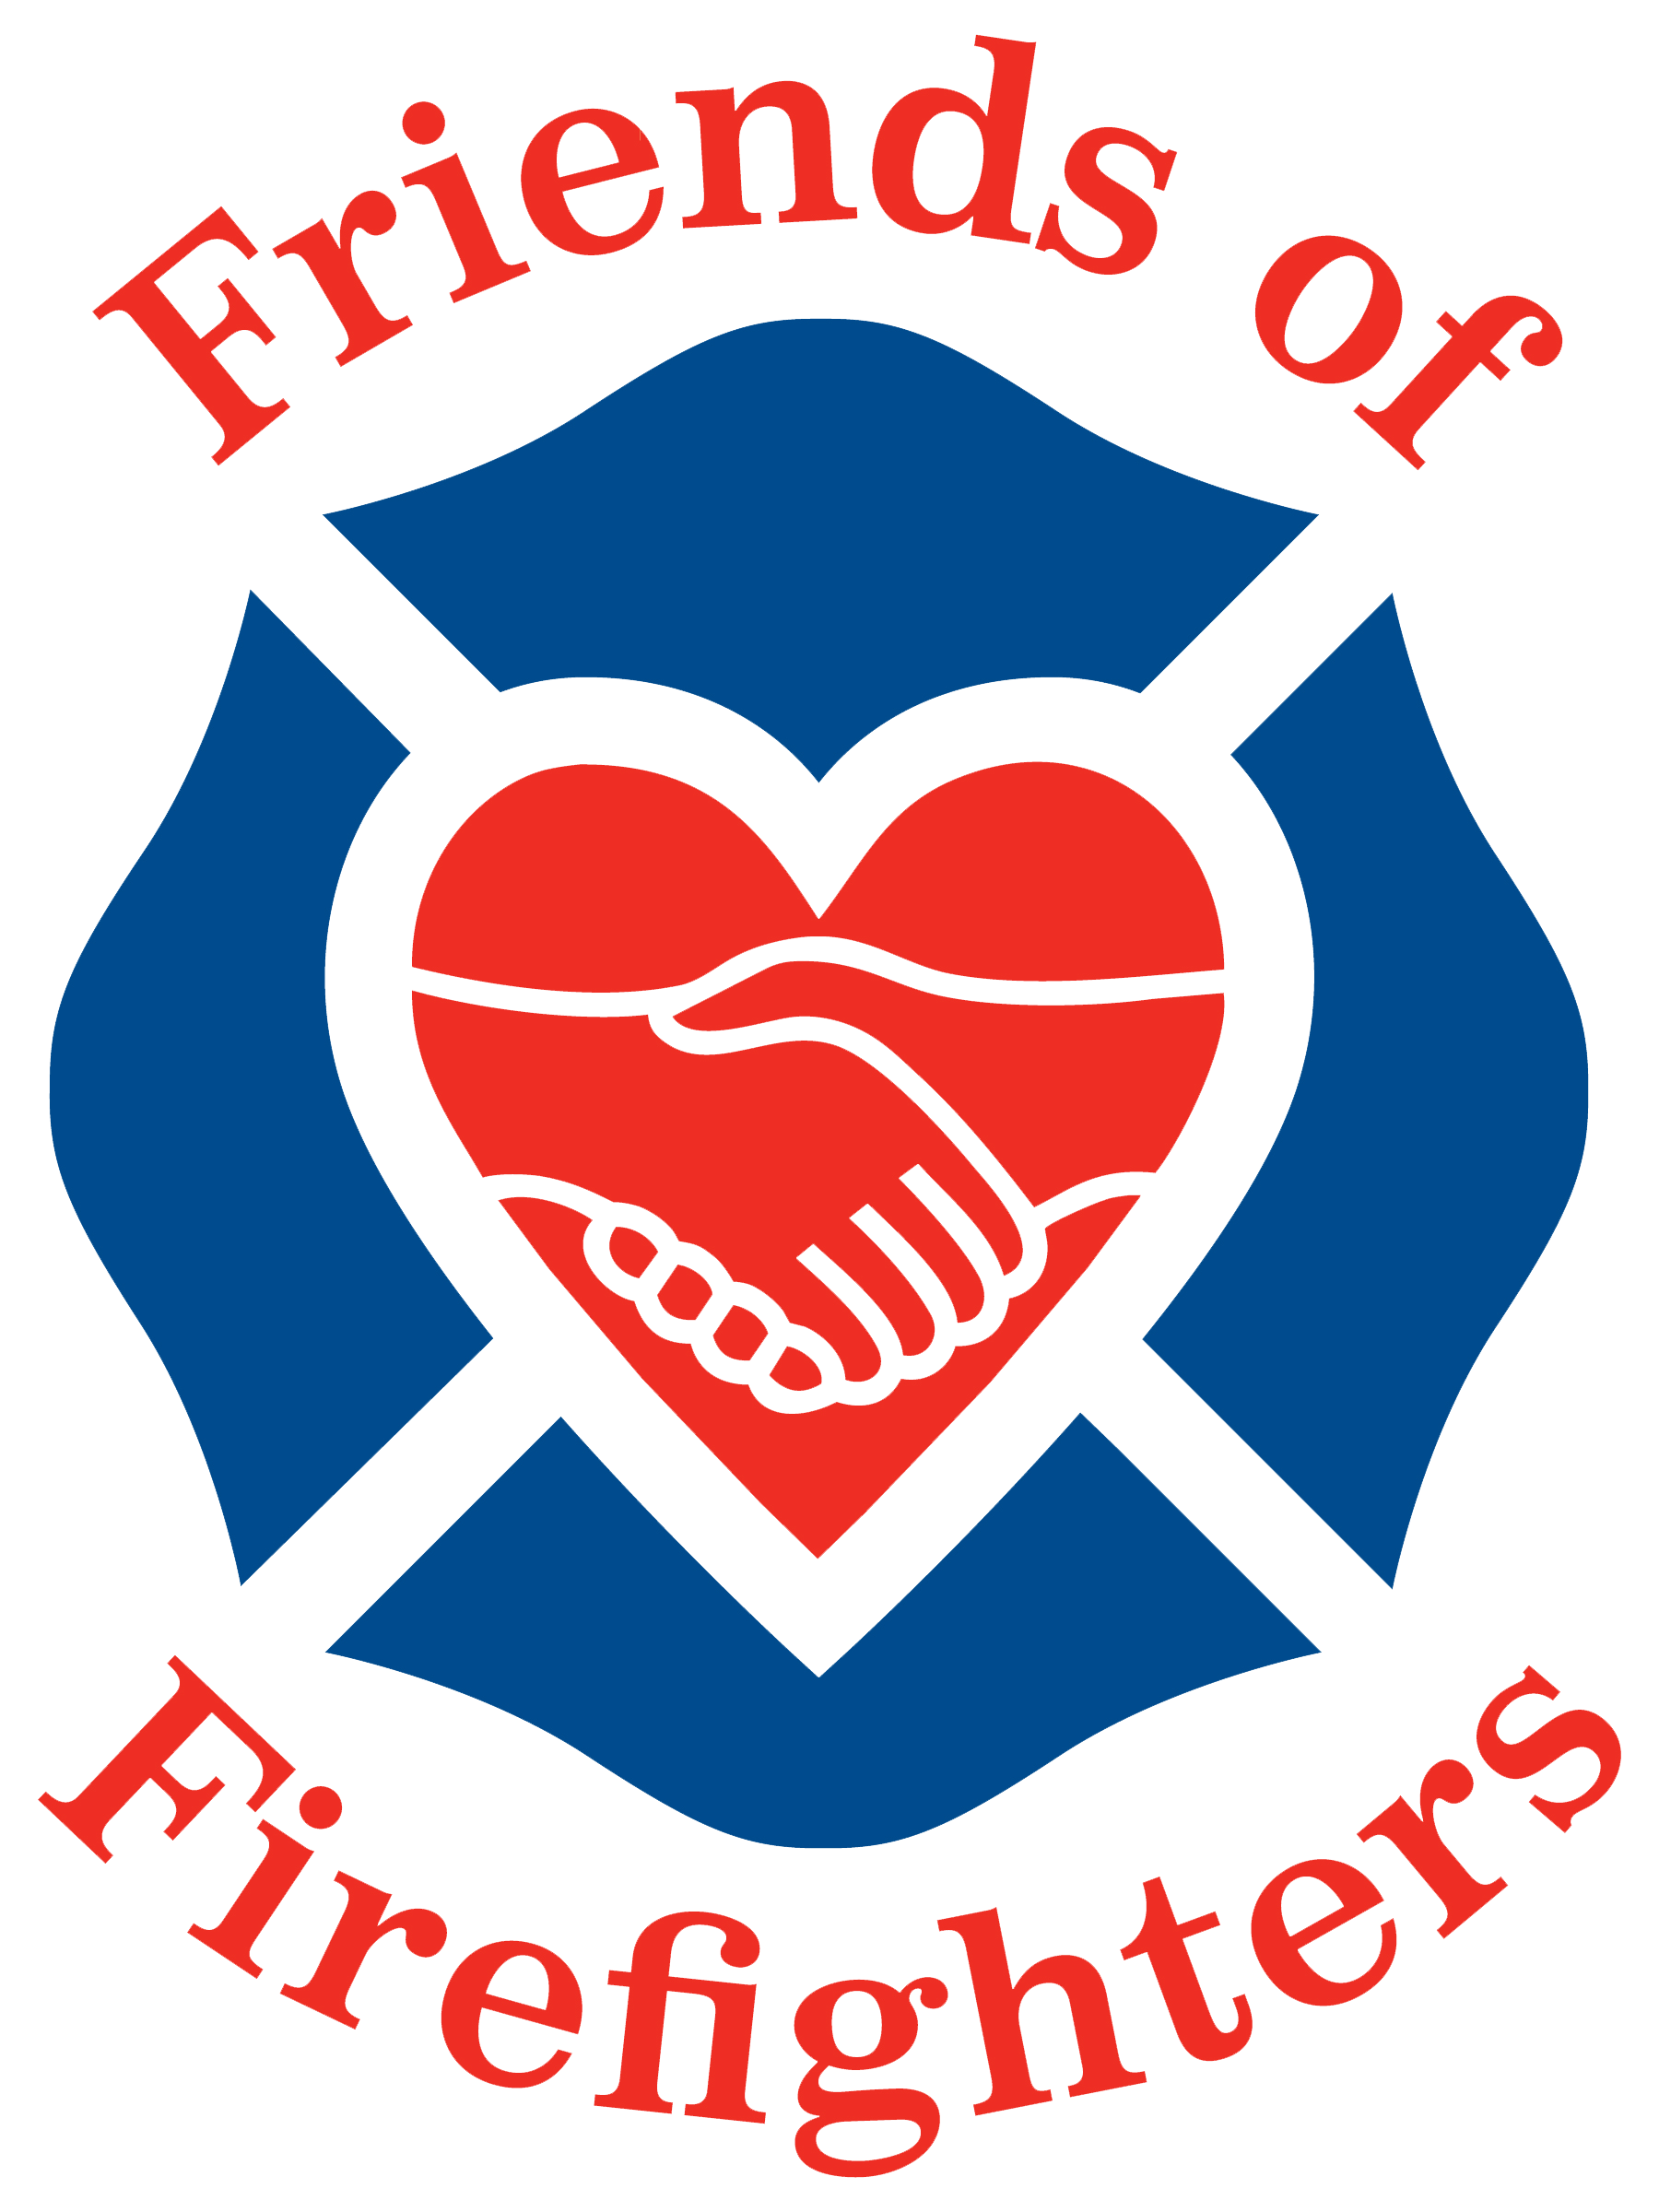 Friends of Firefighters image